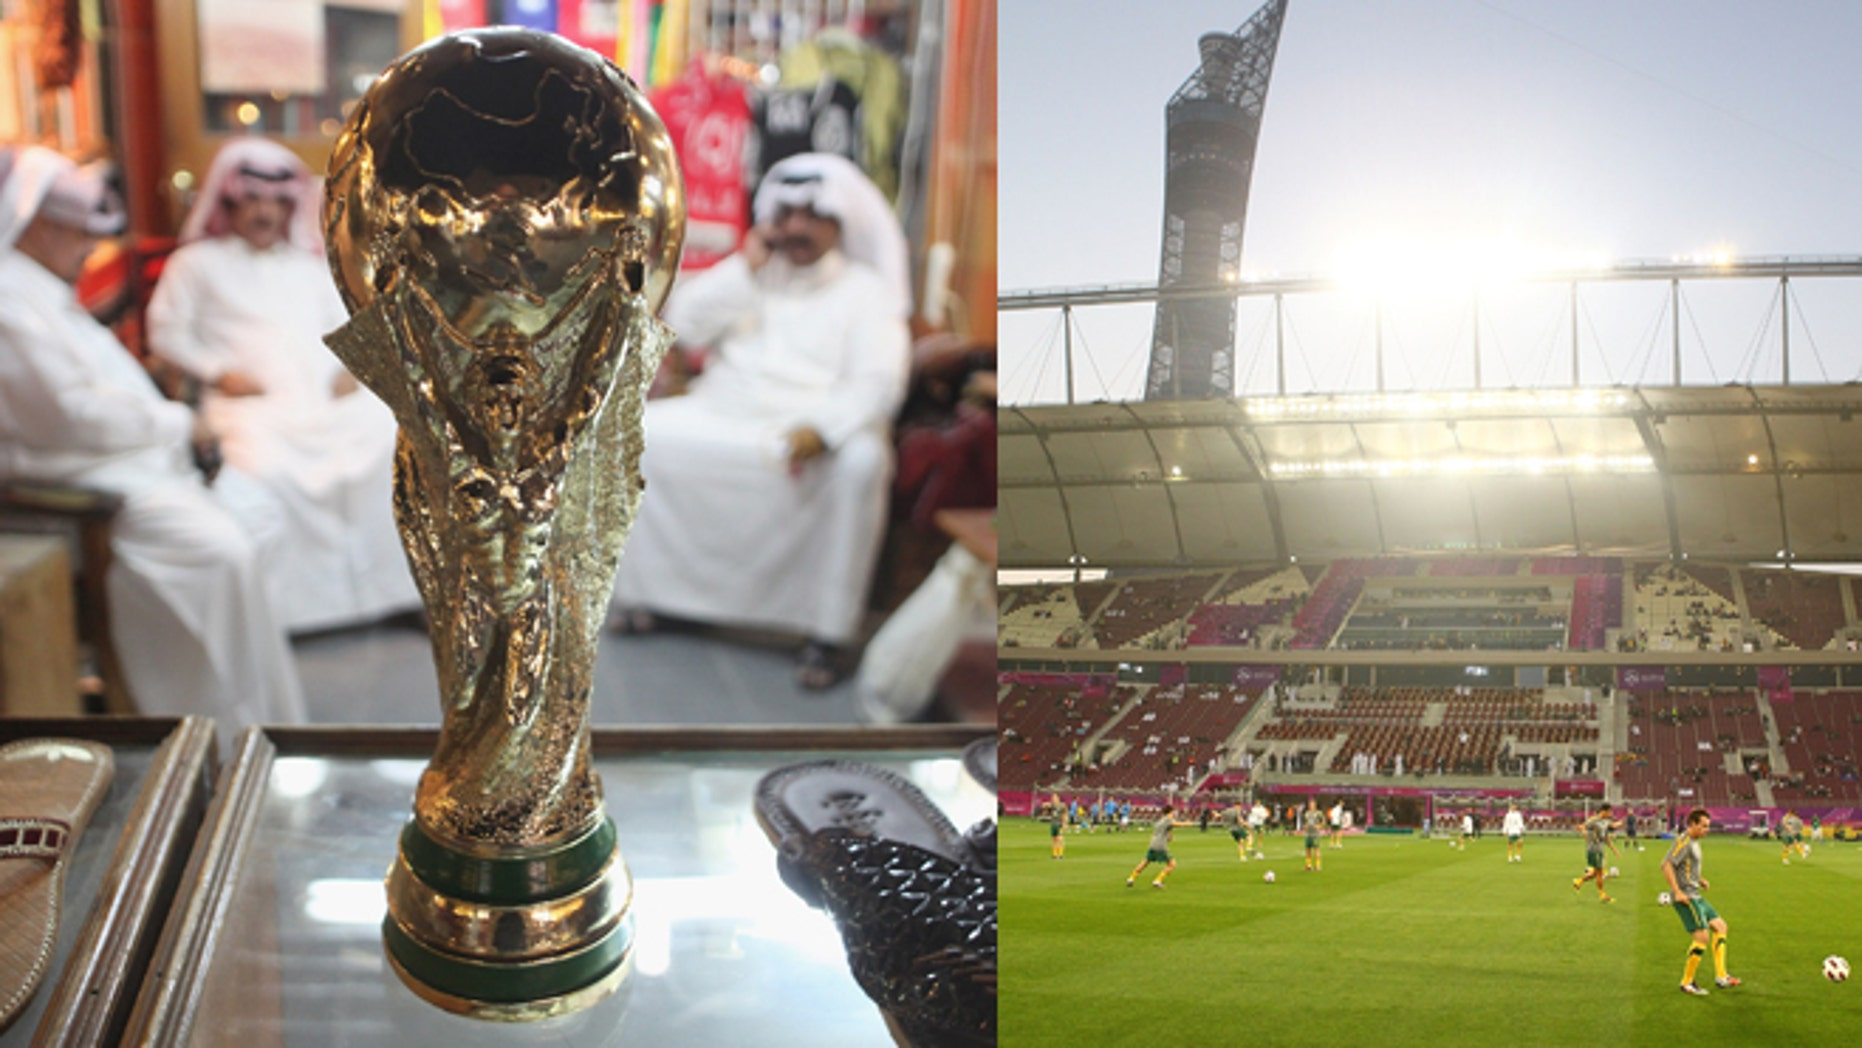 Left: Arab men sit at a shoemaker's stall with a replica of the FIFA World Cup trophy in Doha, Qatar. (Photo by Sean Gallup/Getty Images) Right: Khalifa International Stadium in Doha, Qatar. The average daily temperatures for late June and early July are well over 100 degrees. (Photo by Robert Cianflone/Getty Images)